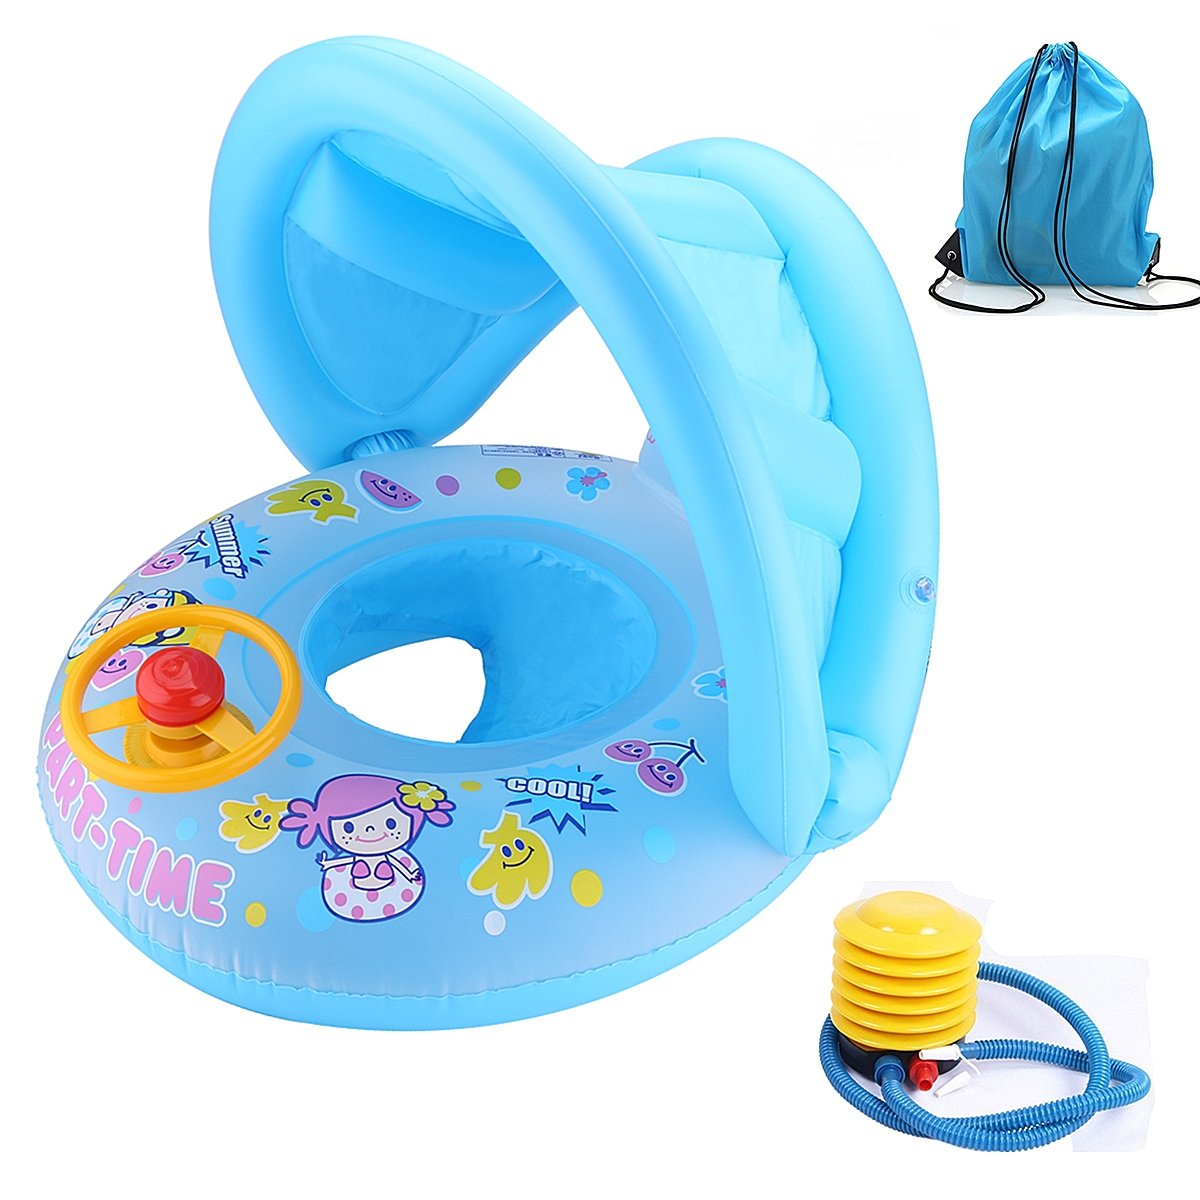 Baby Swim Ring Inflatable Seat Boat Safety Children Toddler Aid Bath ...